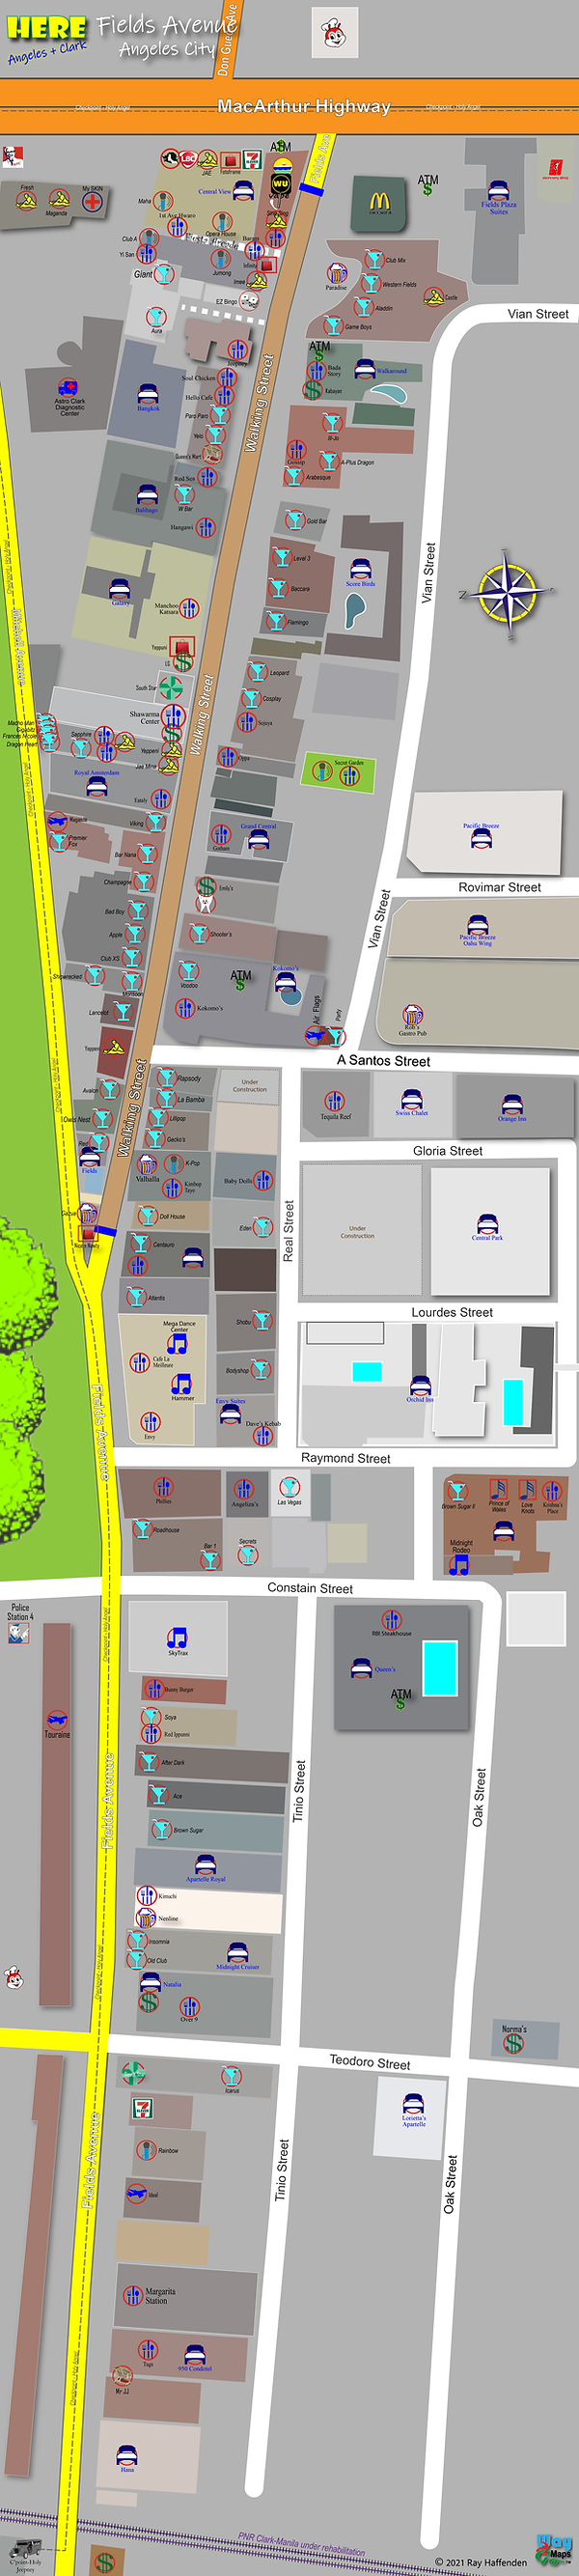 Here-Angeles City  Map of Walking Street